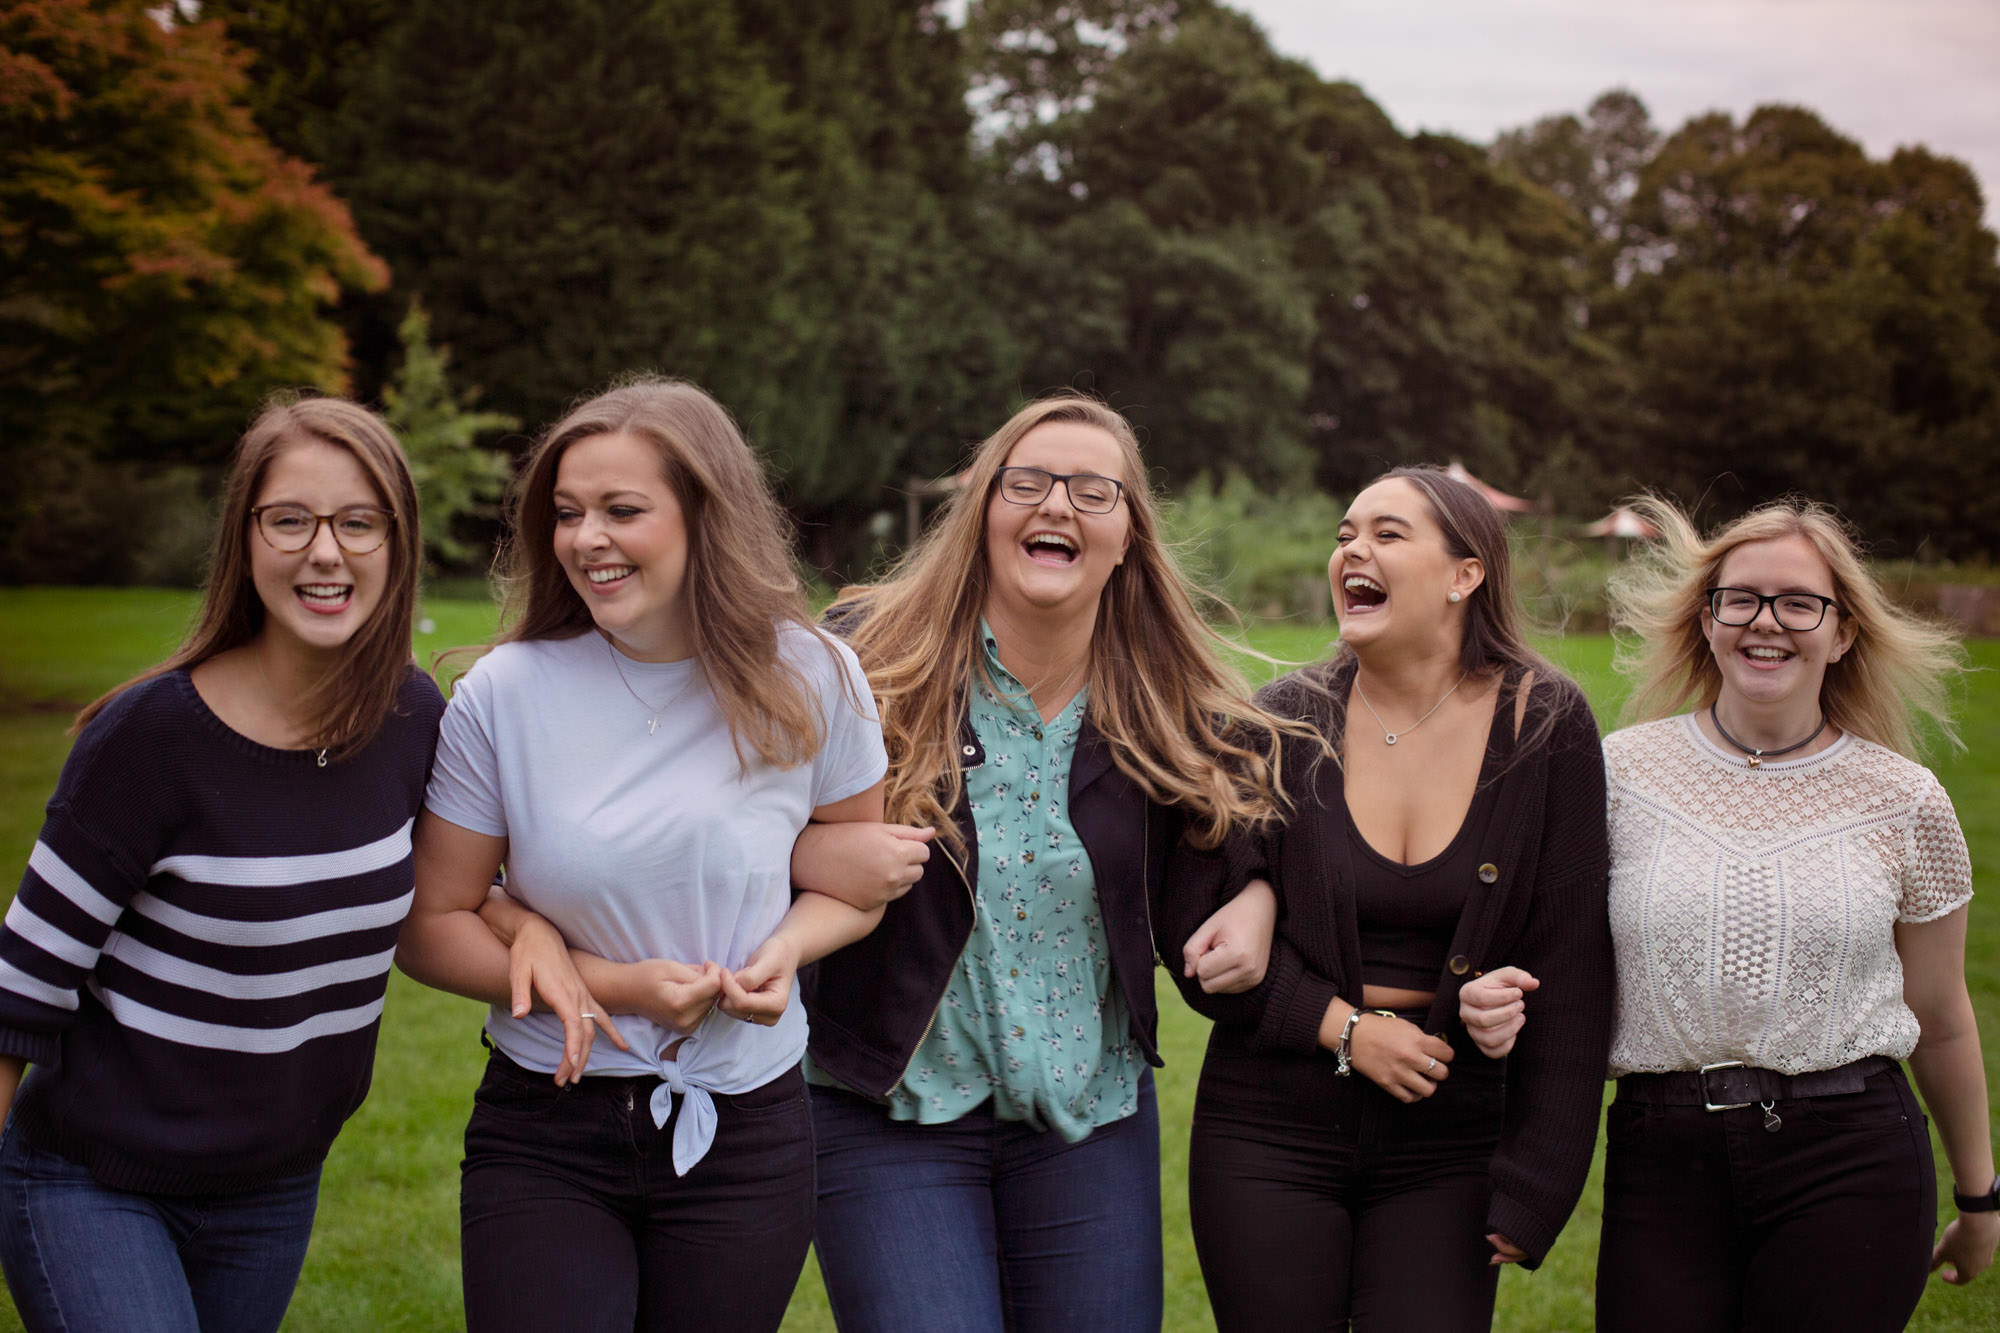 Best friend photo session packages Northern Ireland